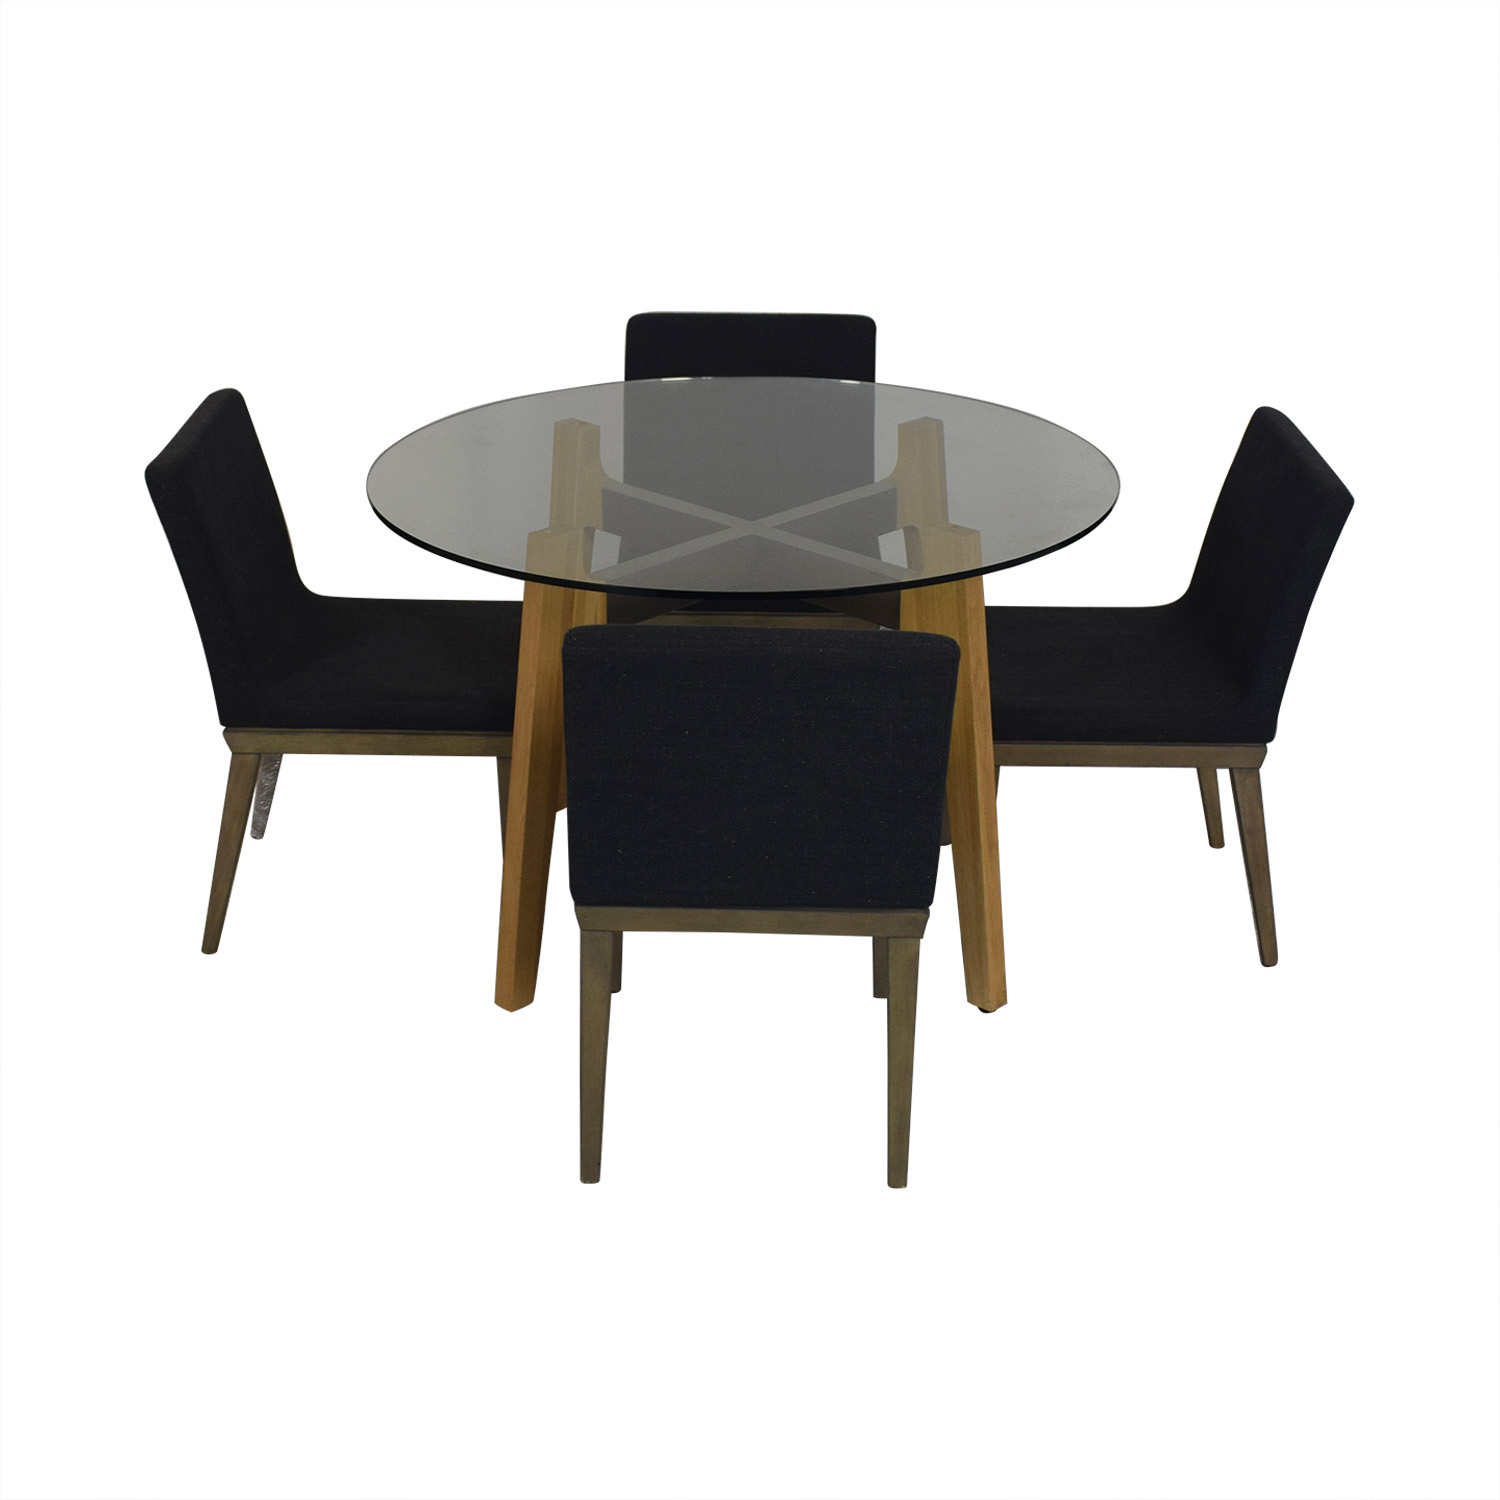 CB2 CB2 Glass Dining Room Table with Four Chairs